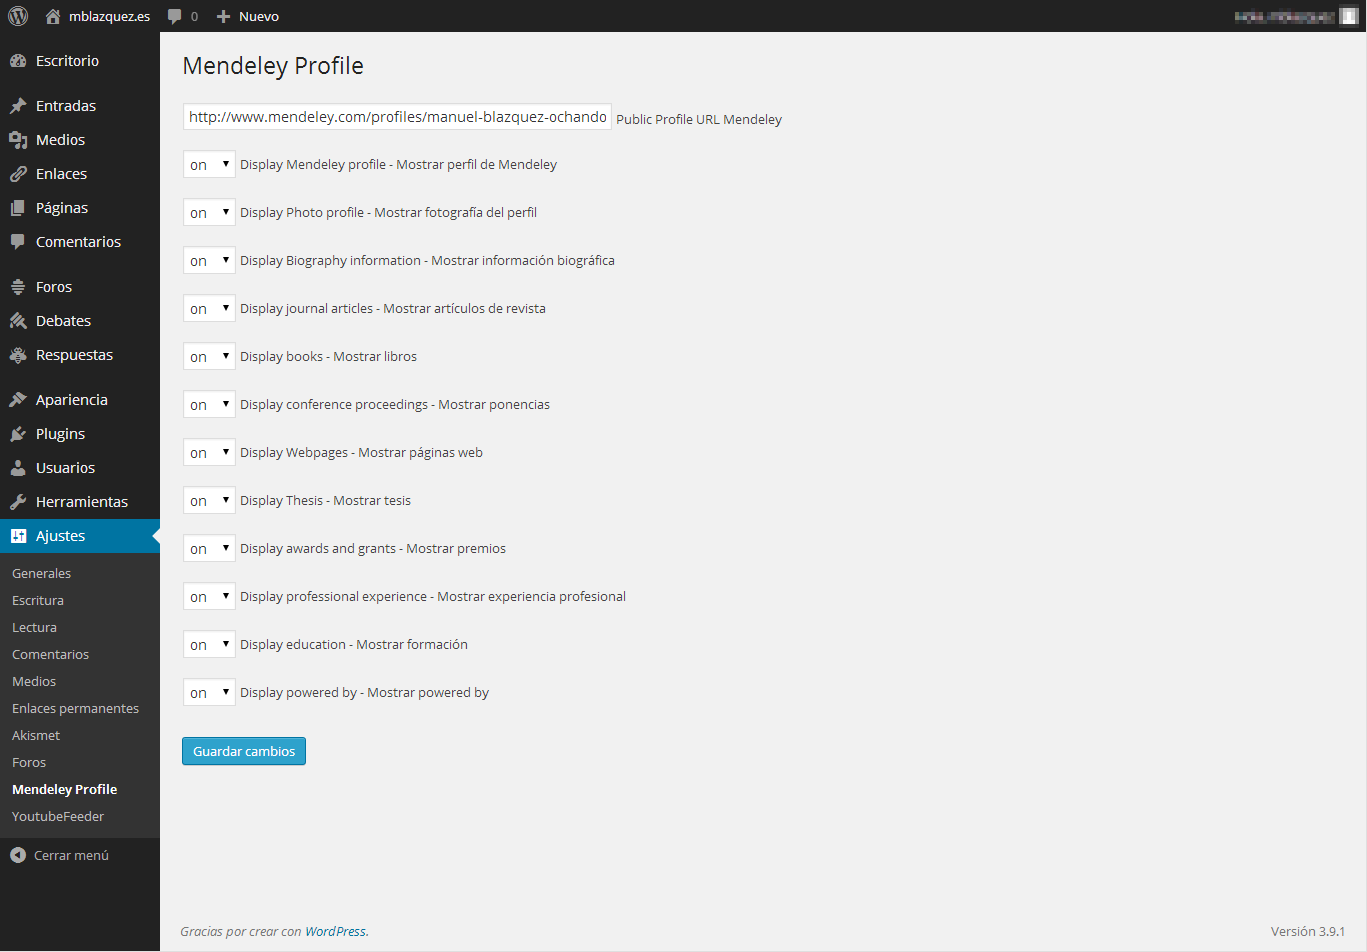 mendeley-profile screenshot 1